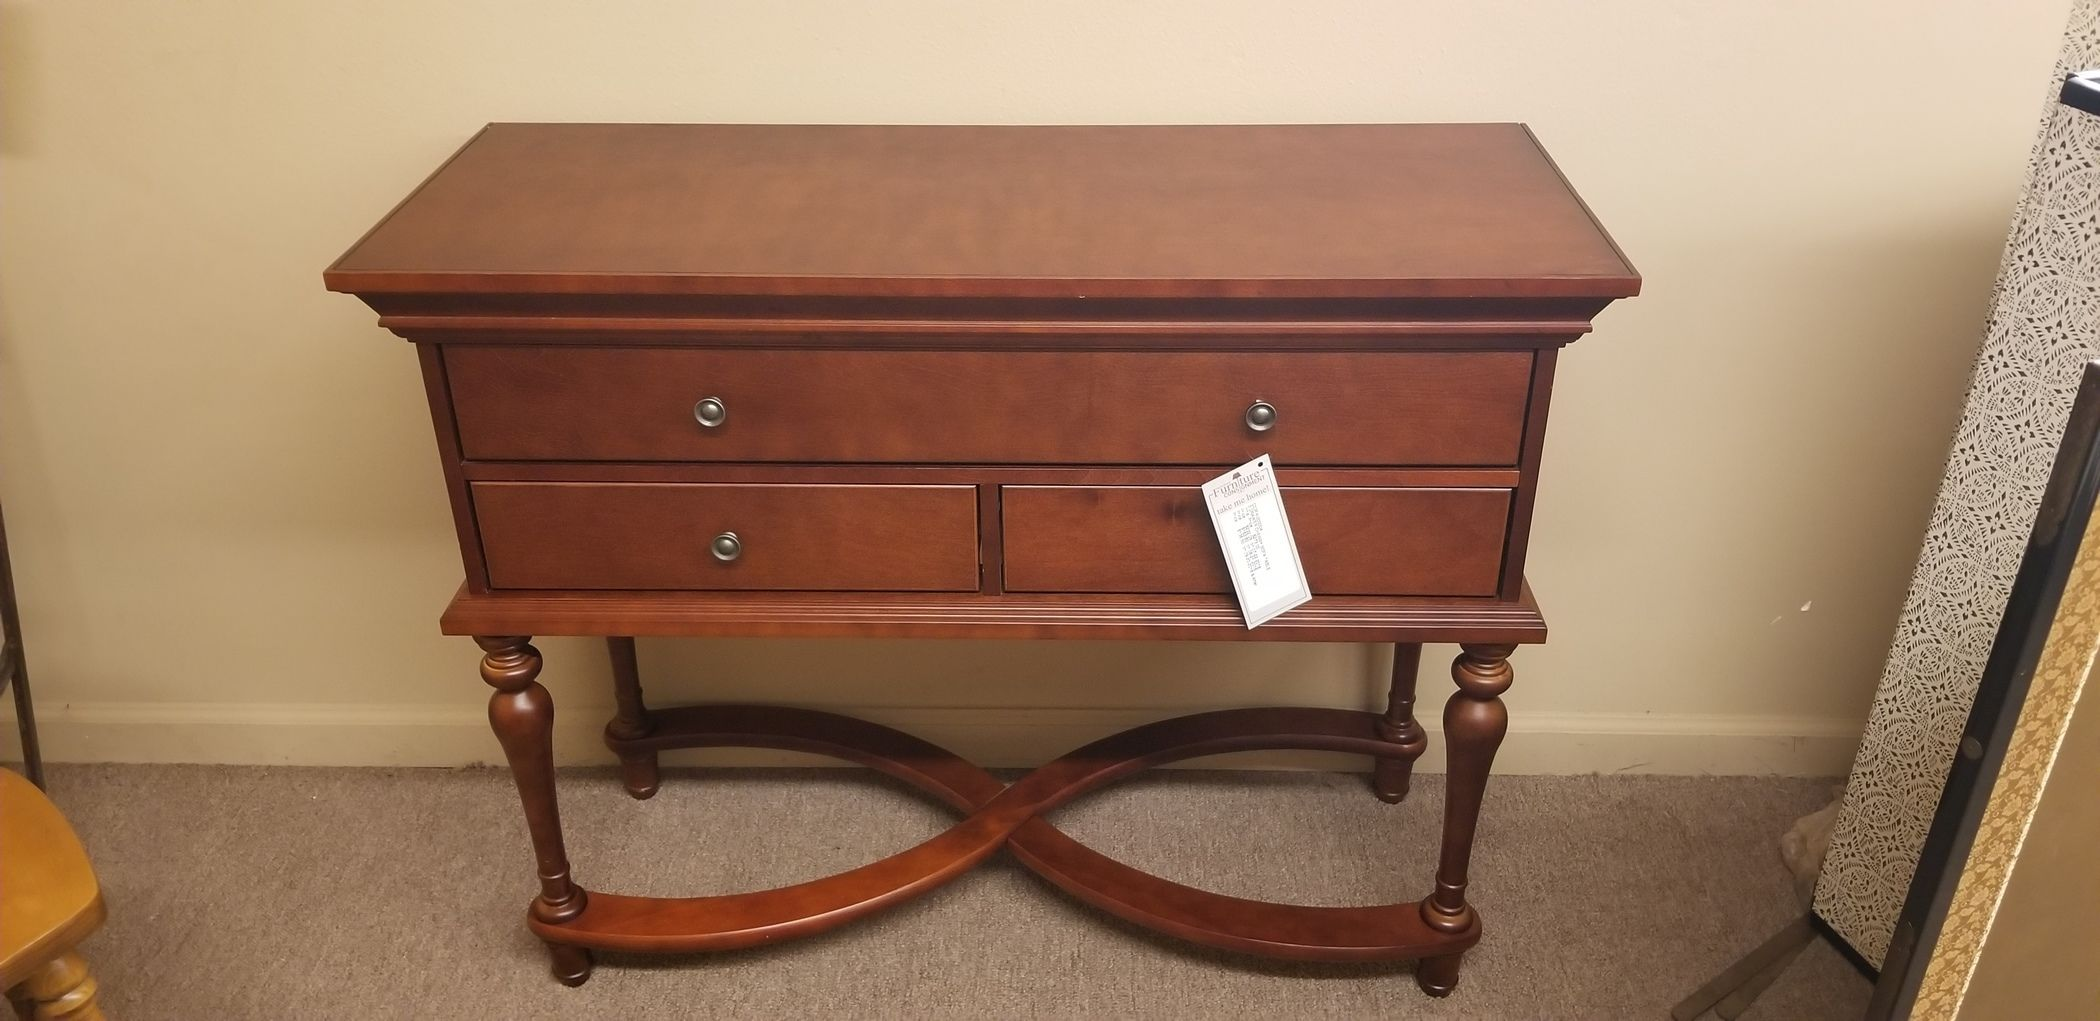 Marvelous 3 Drawer Cherry Sofa Table Delmarva Furniture Consignment Bralicious Painted Fabric Chair Ideas Braliciousco